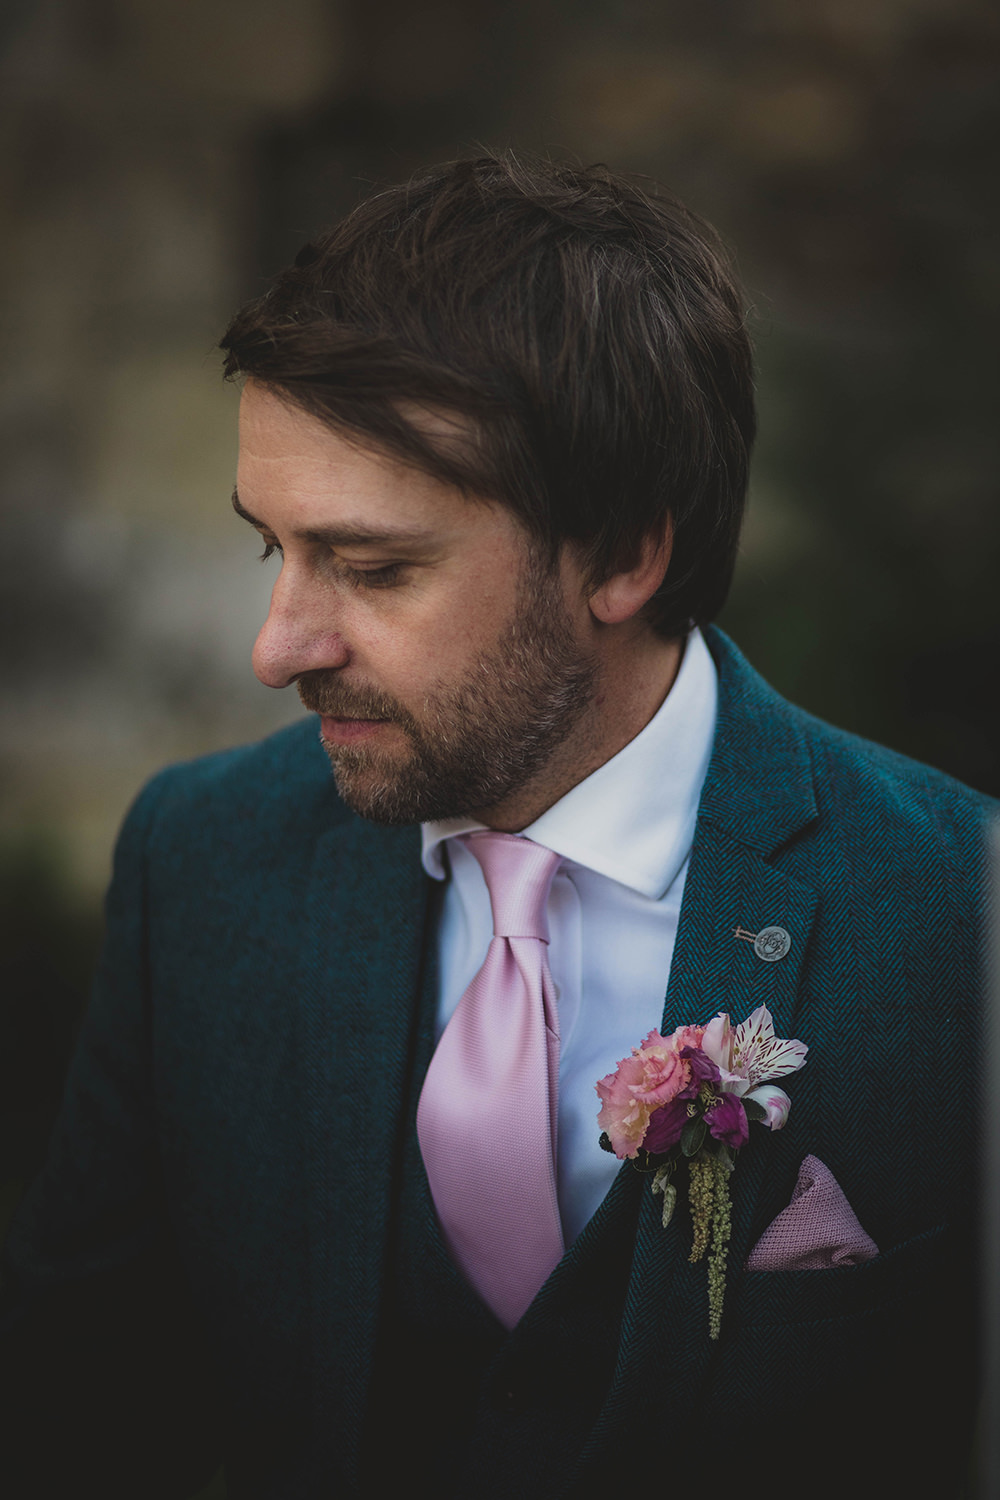 Jervaulx Abbey Wedding Ideas Laura Adams Photography Groom Suit Blue Pink Tie